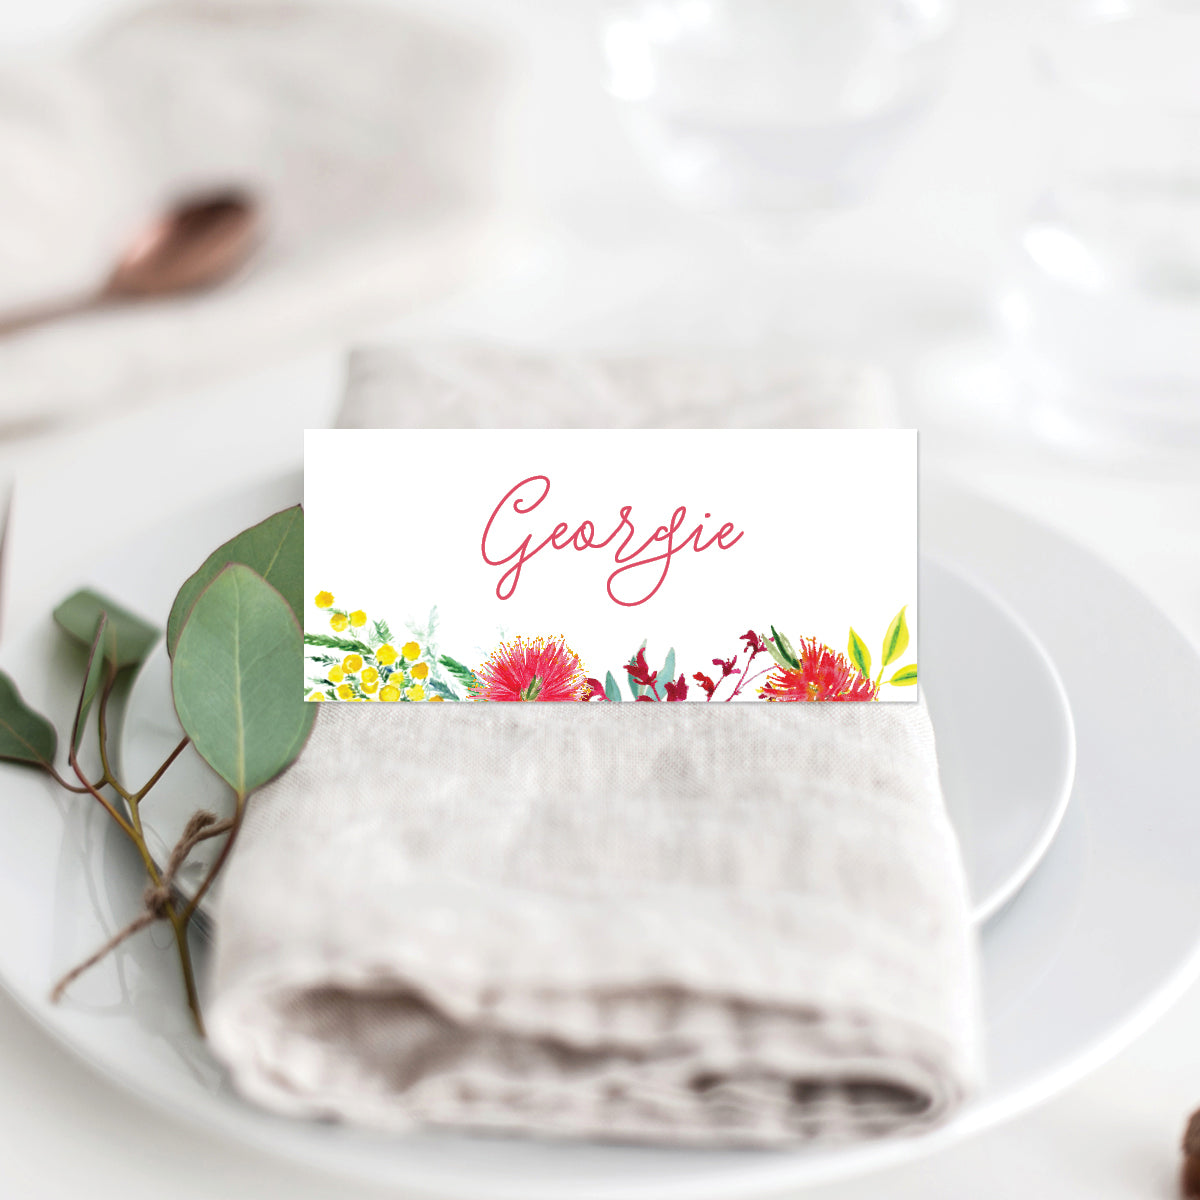 Australiana Placecard